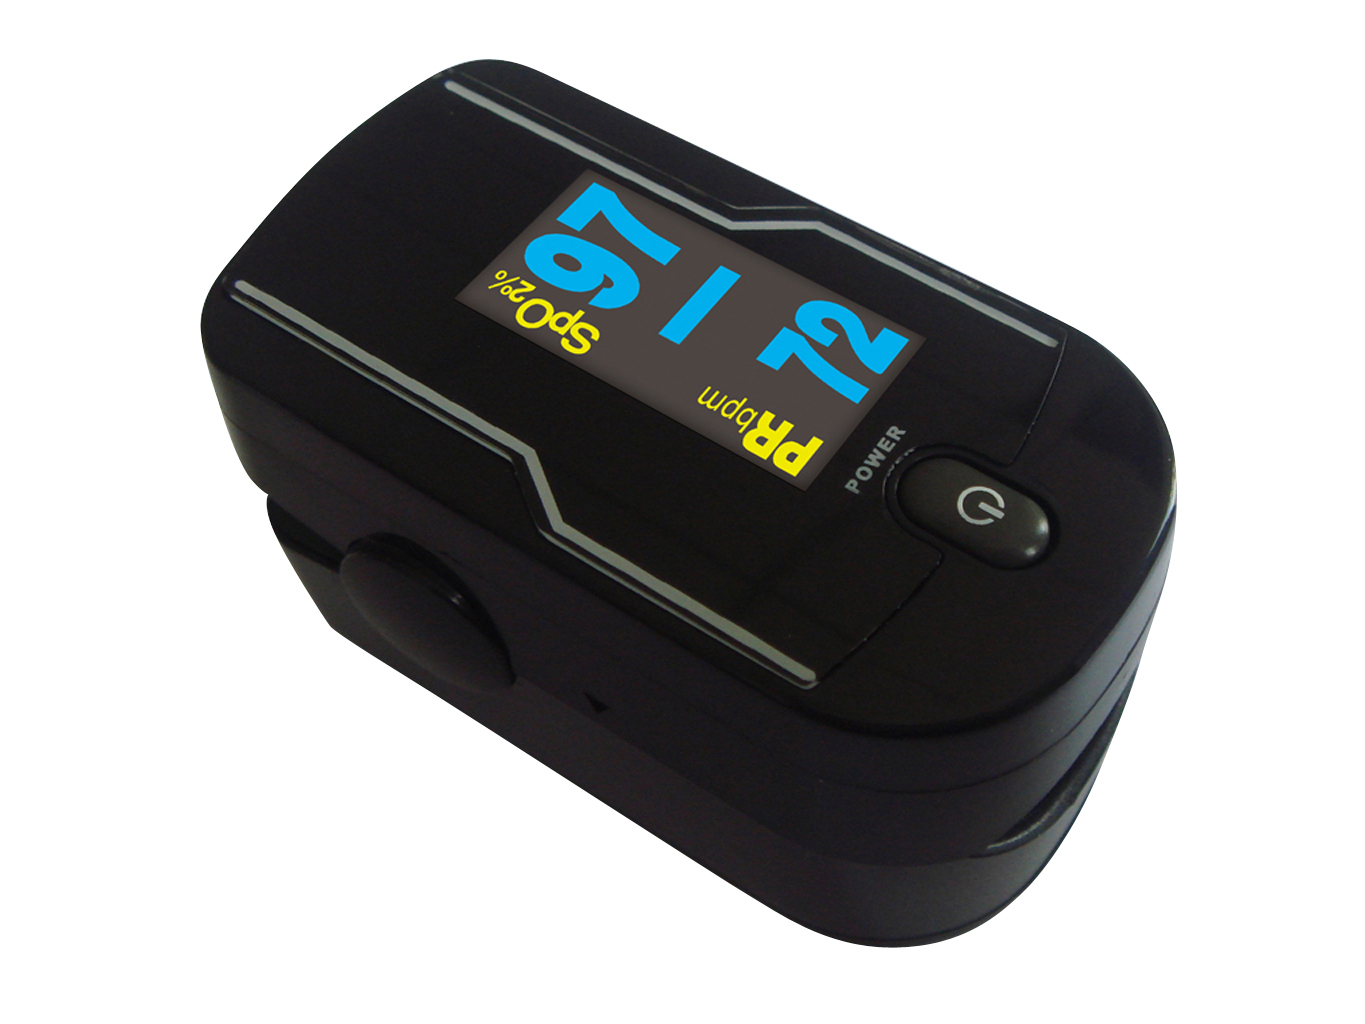 Unipride KH489 Carepeutic Fingertip Pulse Oximeter Pro